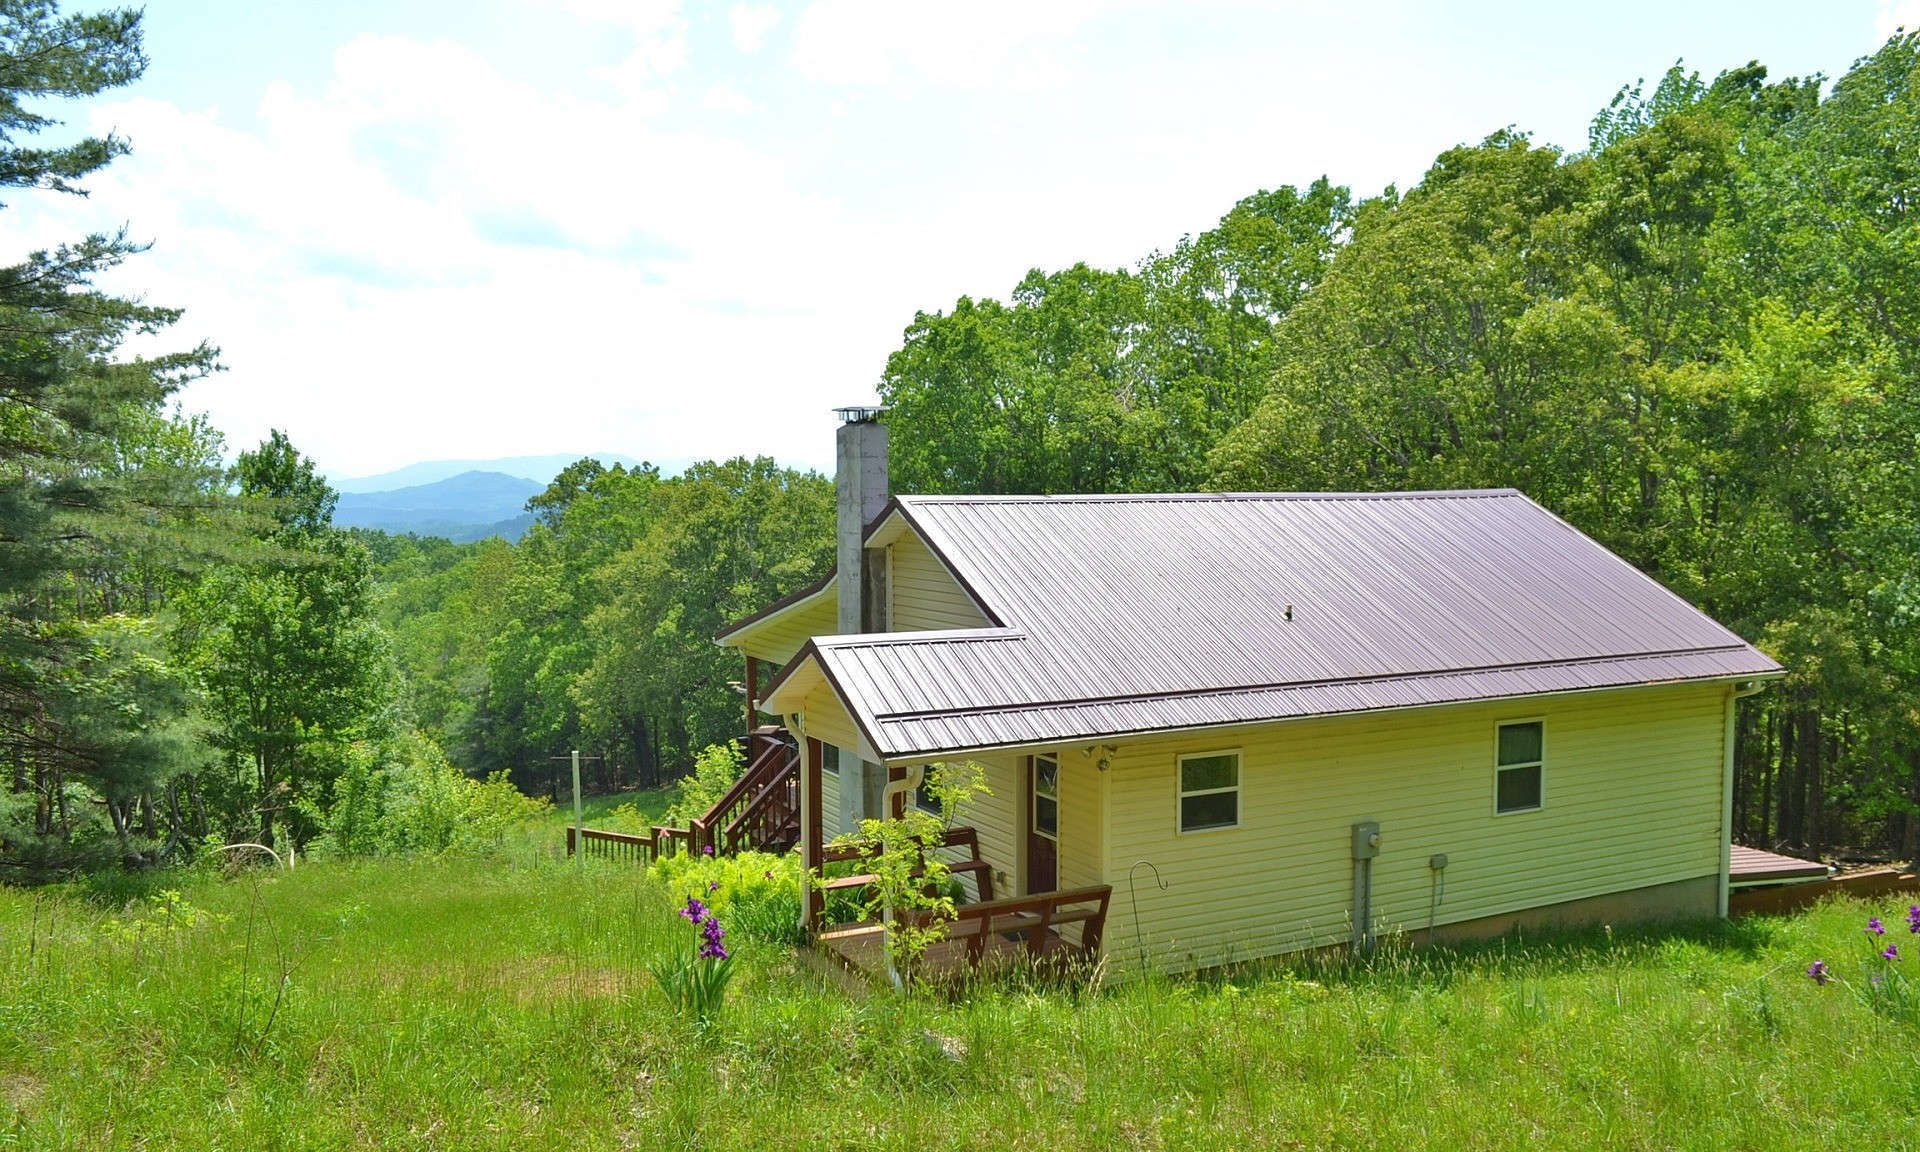 Enjoy Private mountain living and fabulous long range layered views with this sweet 2-bedroom, 2-bath mountain cottage nestled among 6.95 acres in Kindrick Mountain, a private gated community in the Mouth of Wilson area of Grayson County of Southwest Virginia.